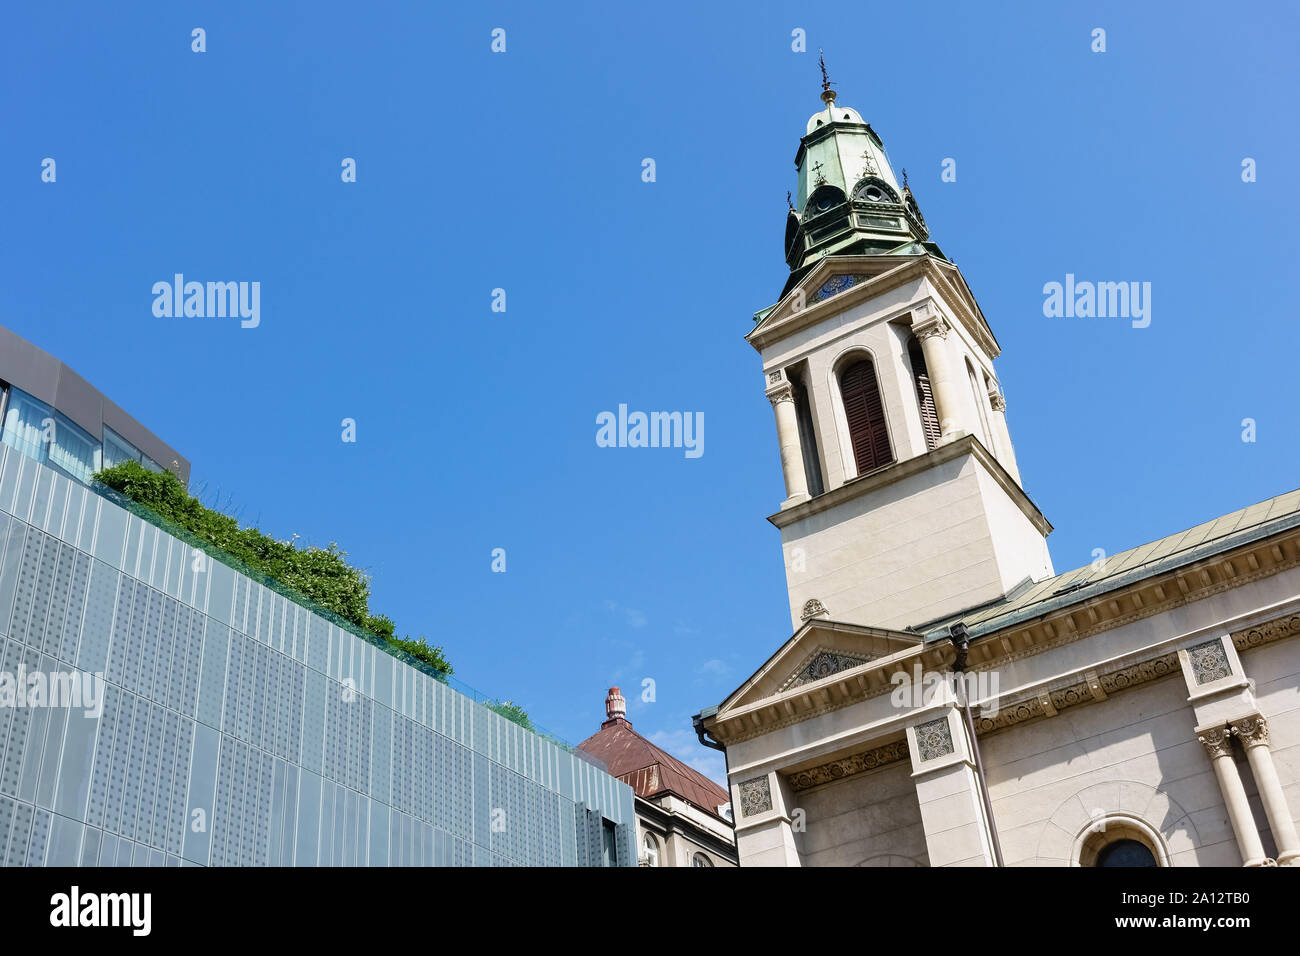 Cathedral Of The Transfiguration Of The Lord Serbian Orthodox Cathedral Croatian Church Bell Tower Zagreb Croatia Europe Eu Copy Space Blue Sky Stock Photo Alamy